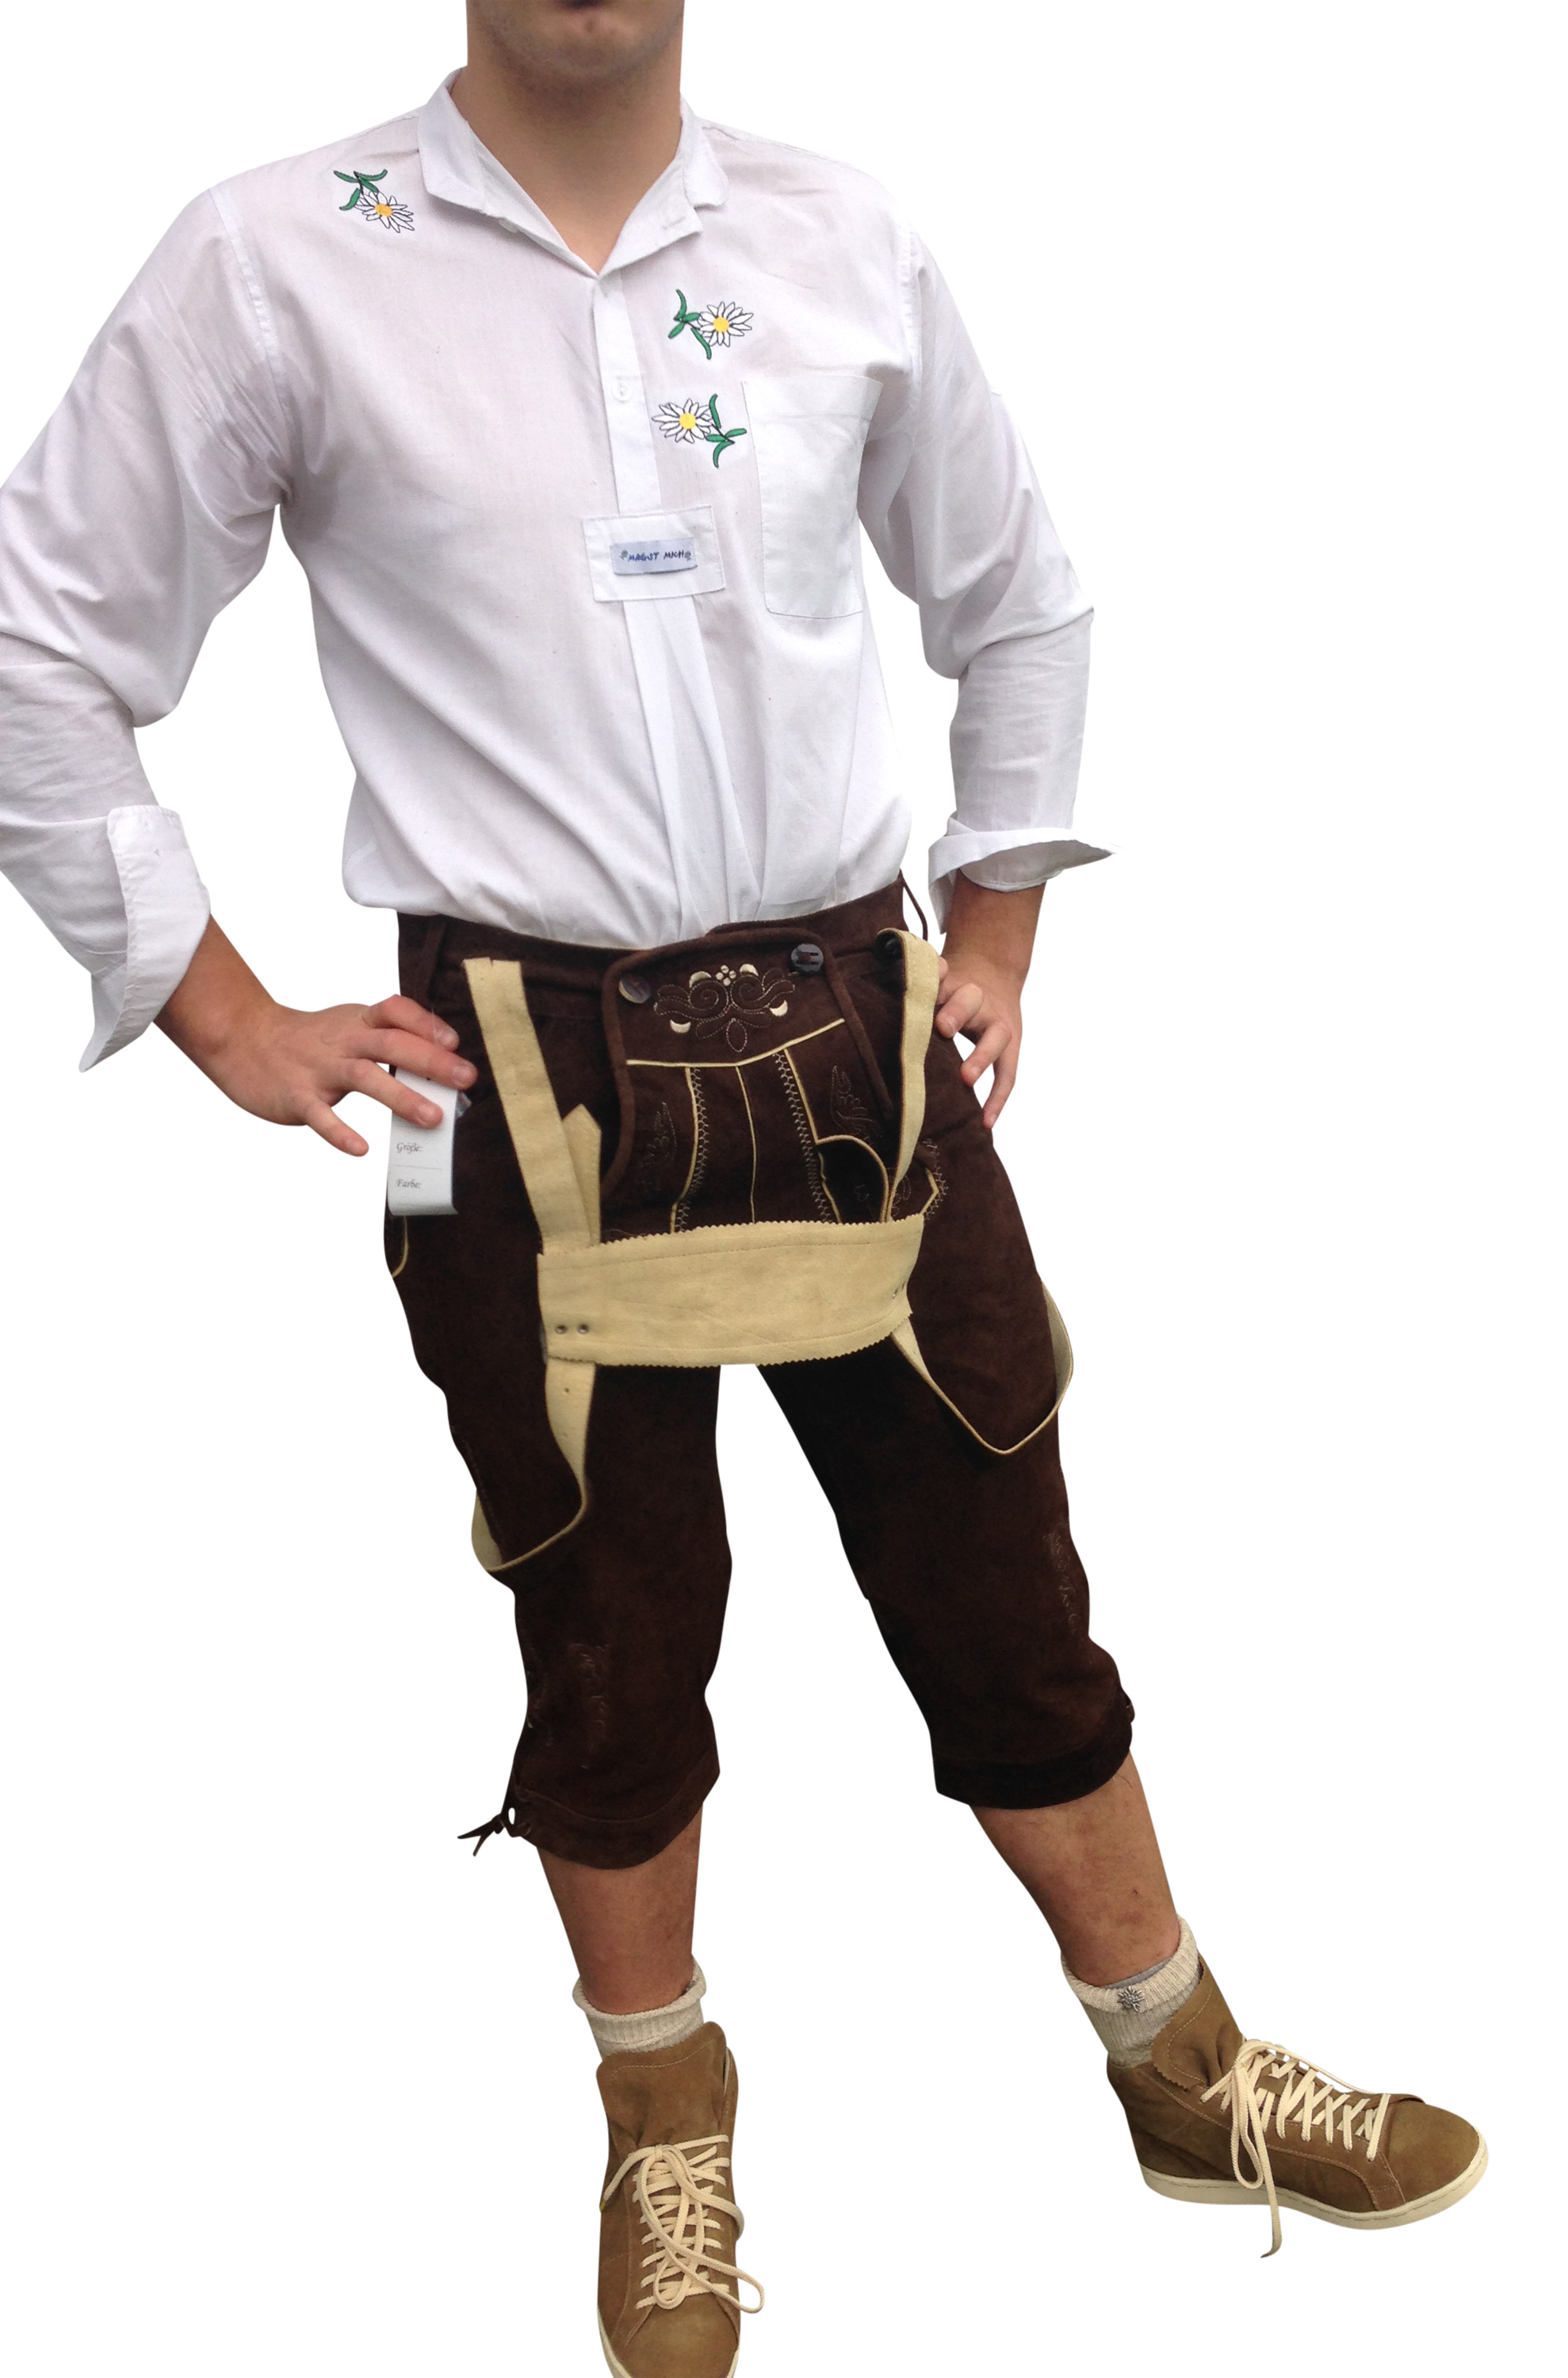 trachtenhosen trachtenjeans lederhosen herren damen hosen freizeithosen bermuda shorts hot pants. Black Bedroom Furniture Sets. Home Design Ideas